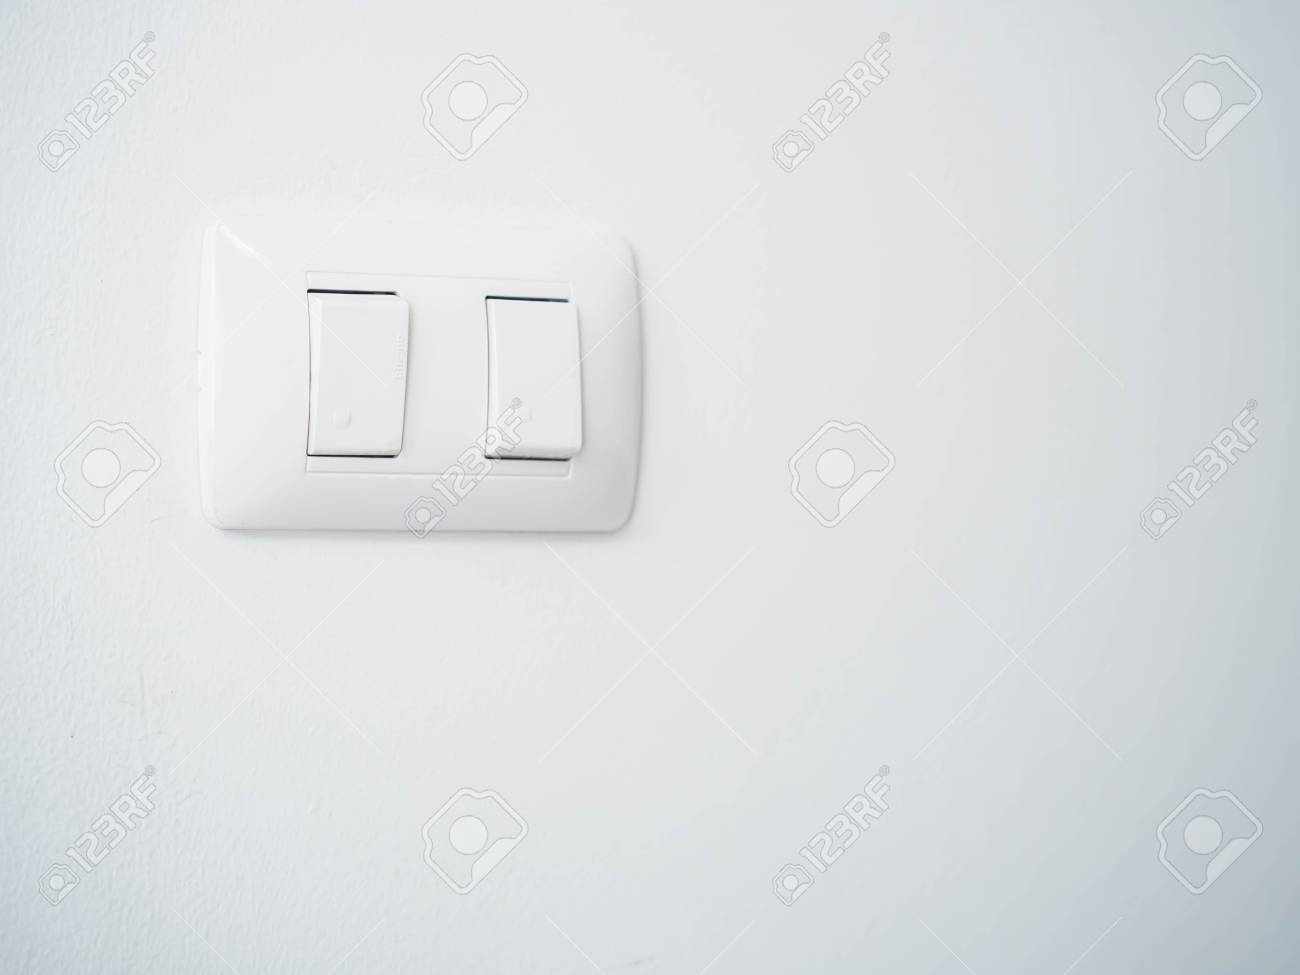 Turn On And Turn Off Switch Symbols With Gray Concrete Or Cement